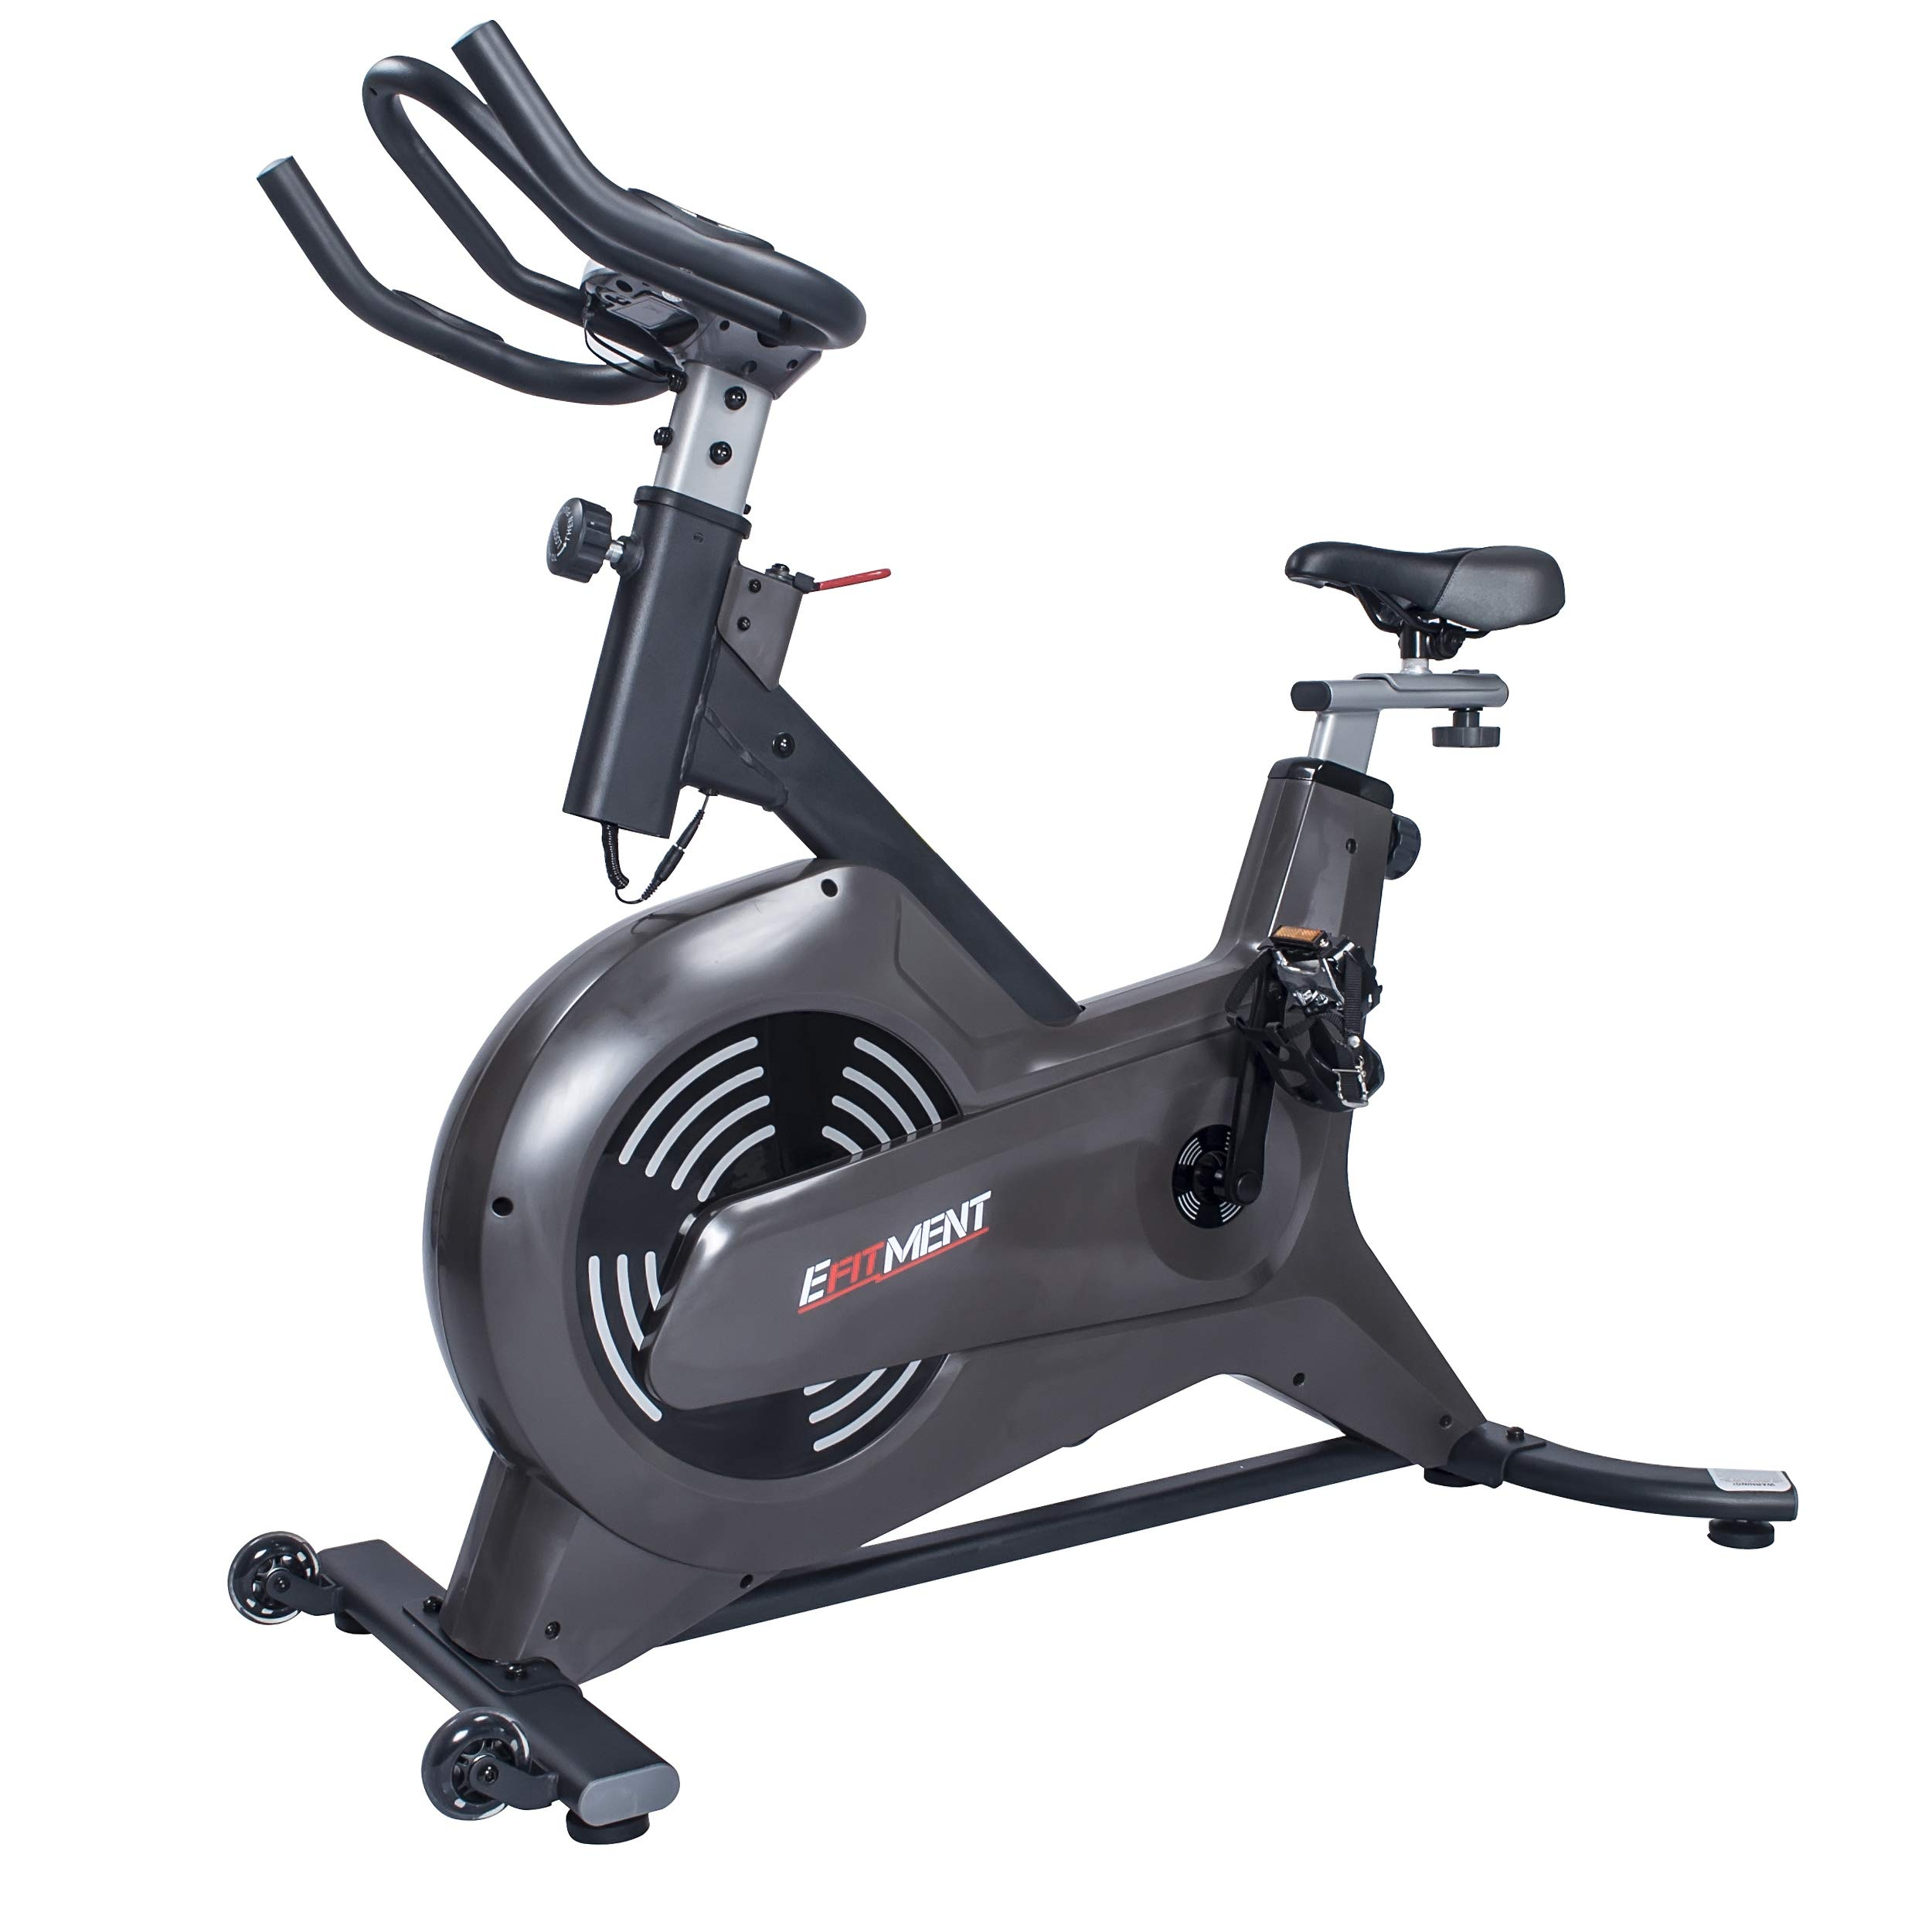 EFITMENT Swift Magnetic Indoor Cycle Bike w/Monitor - IC035